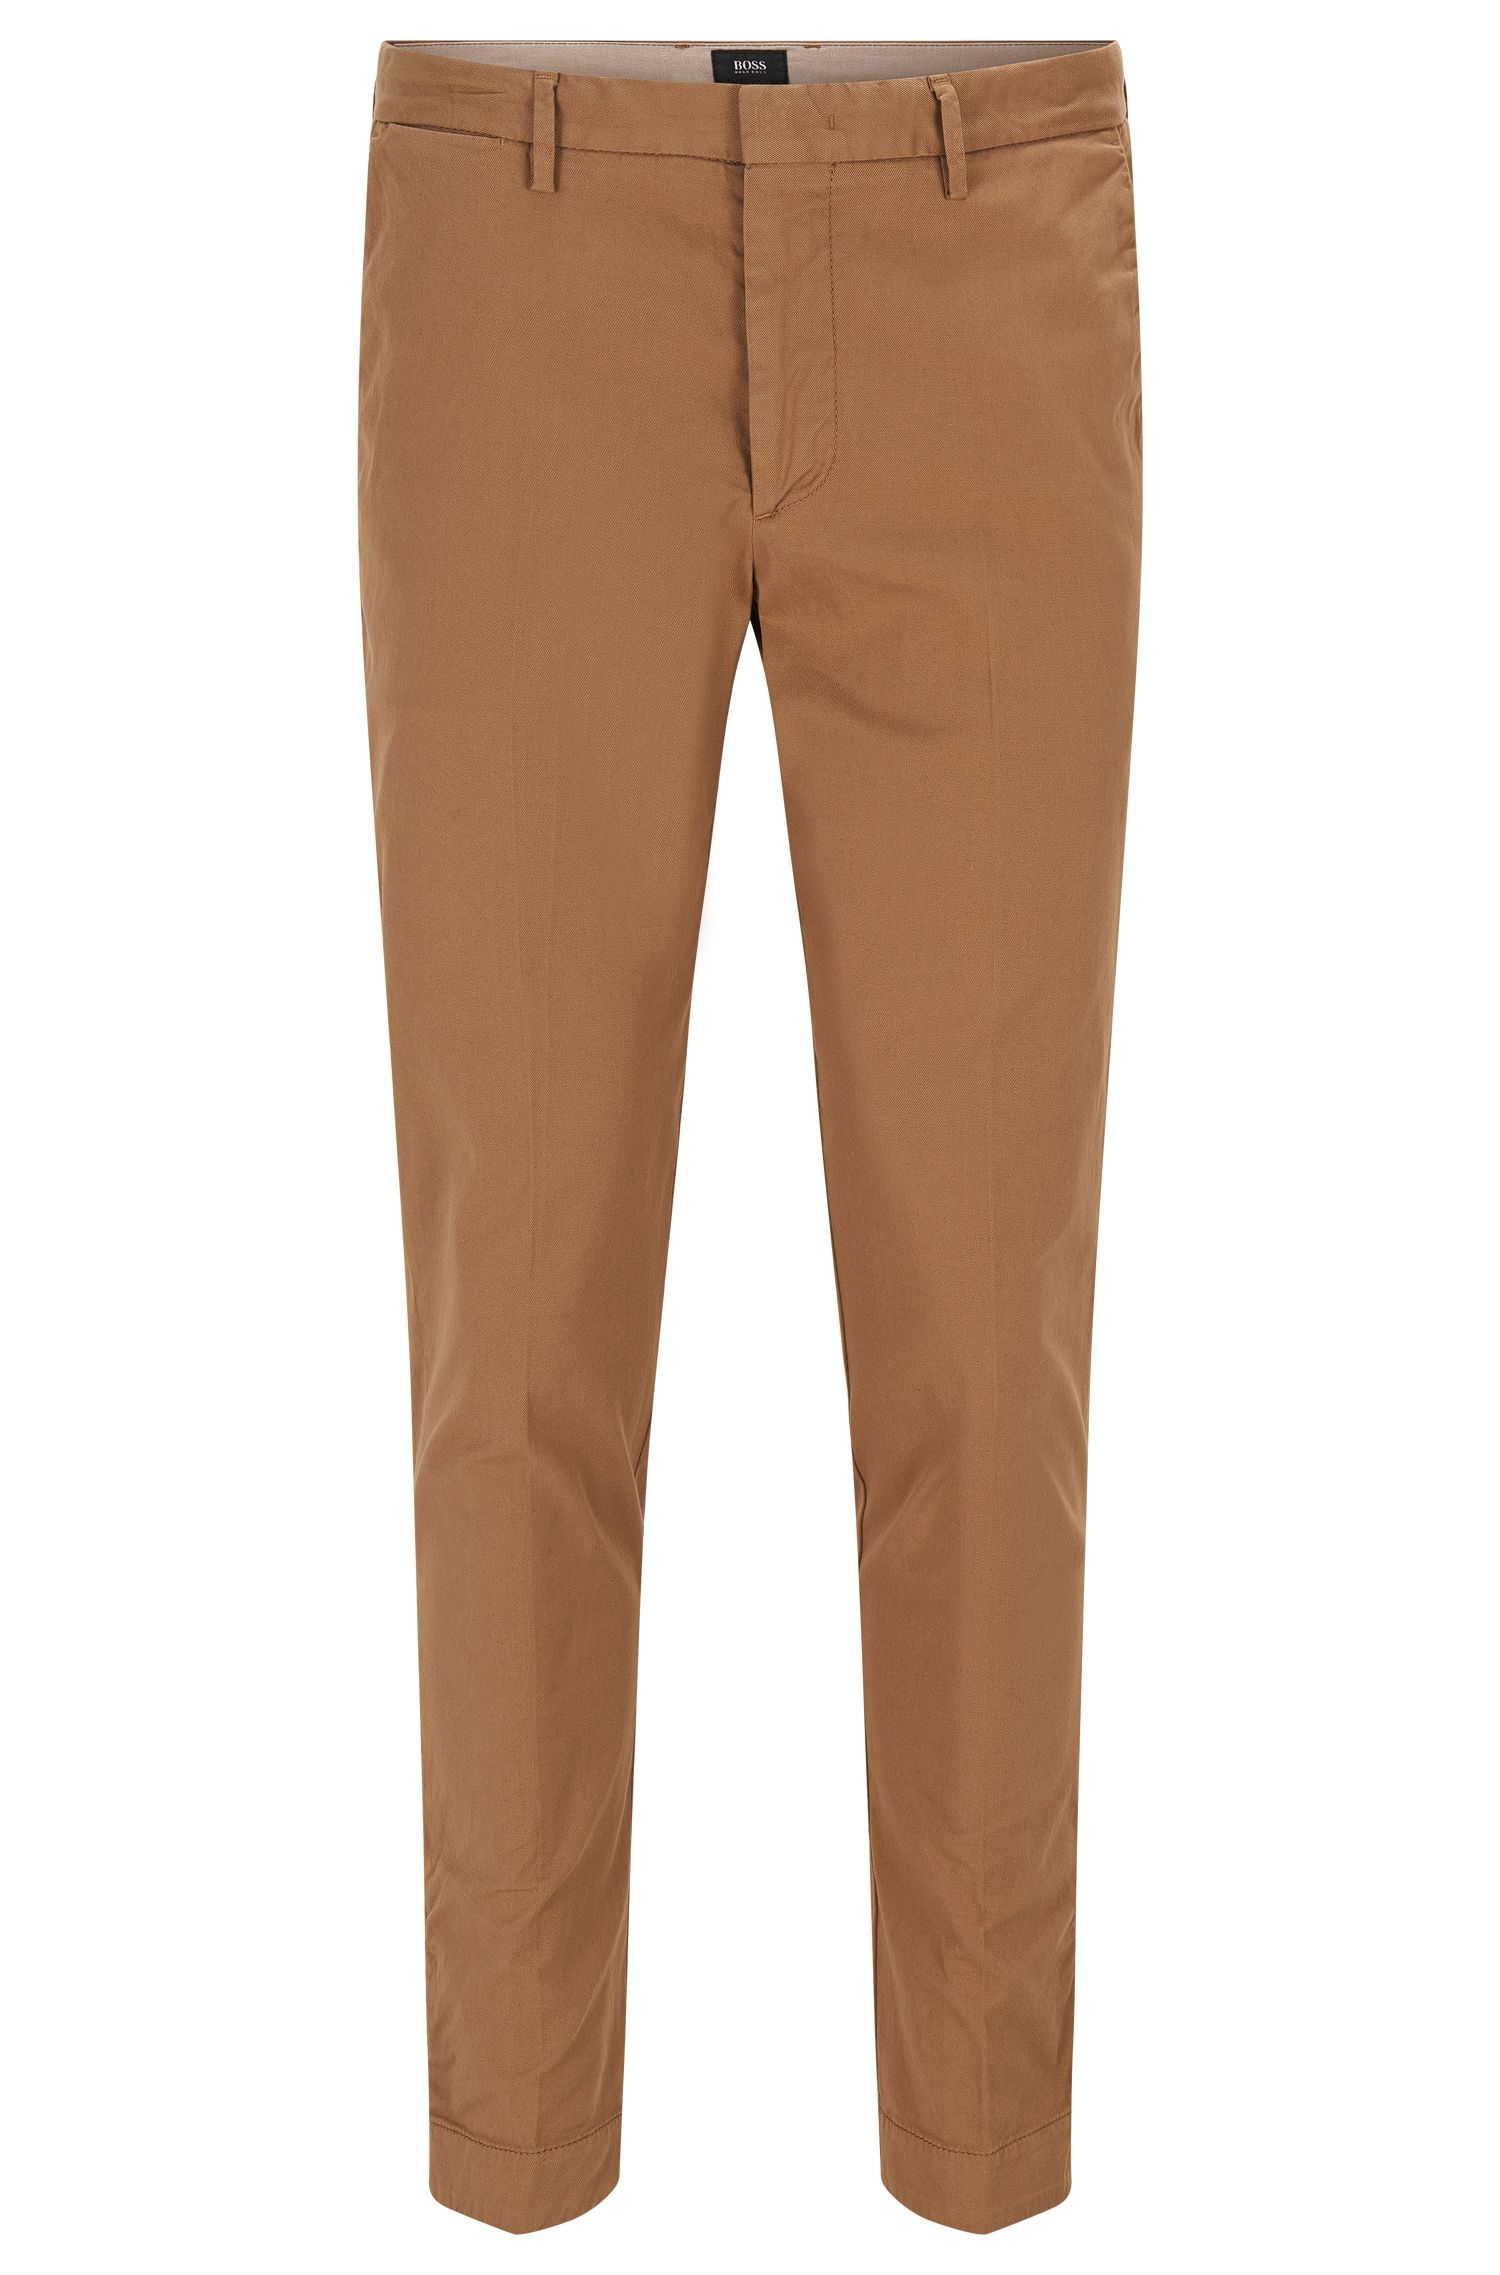 'Kaito Pat D' | Slim Fit, Gabardine Stretch Cotton Chino Pants